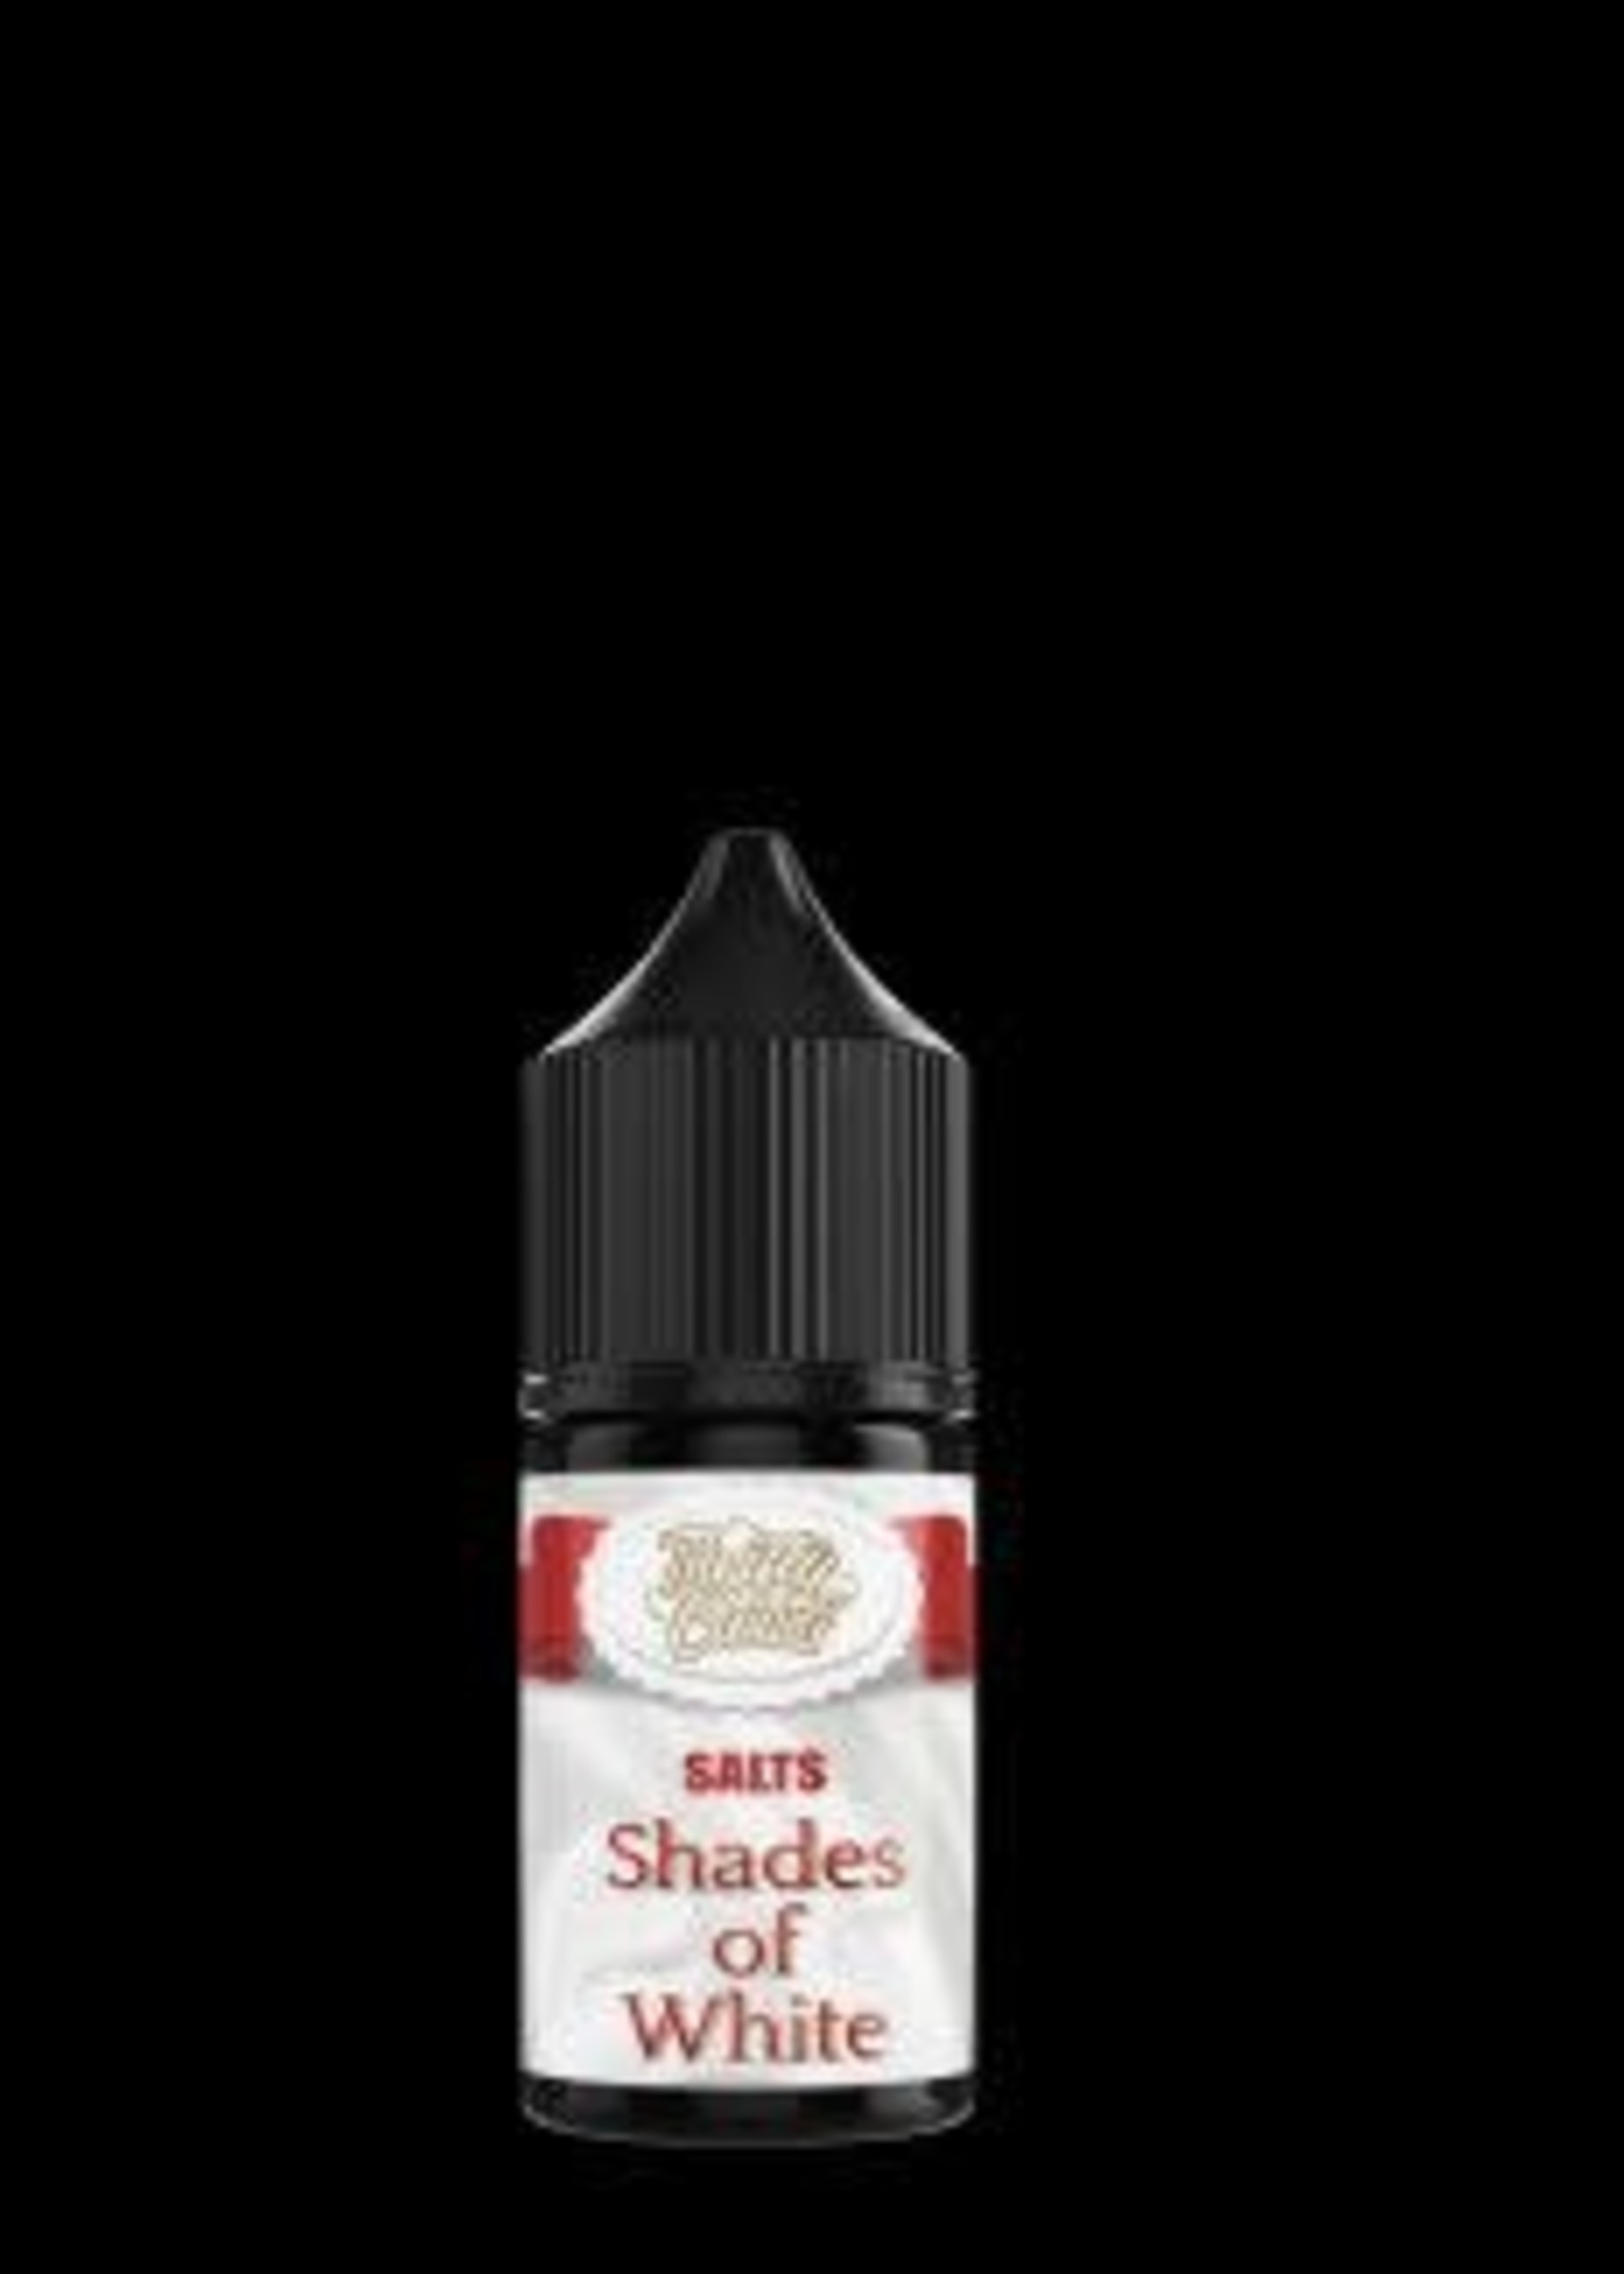 Thrifty clouds Vape flavour - Shades of white salts 30ml- 20mg